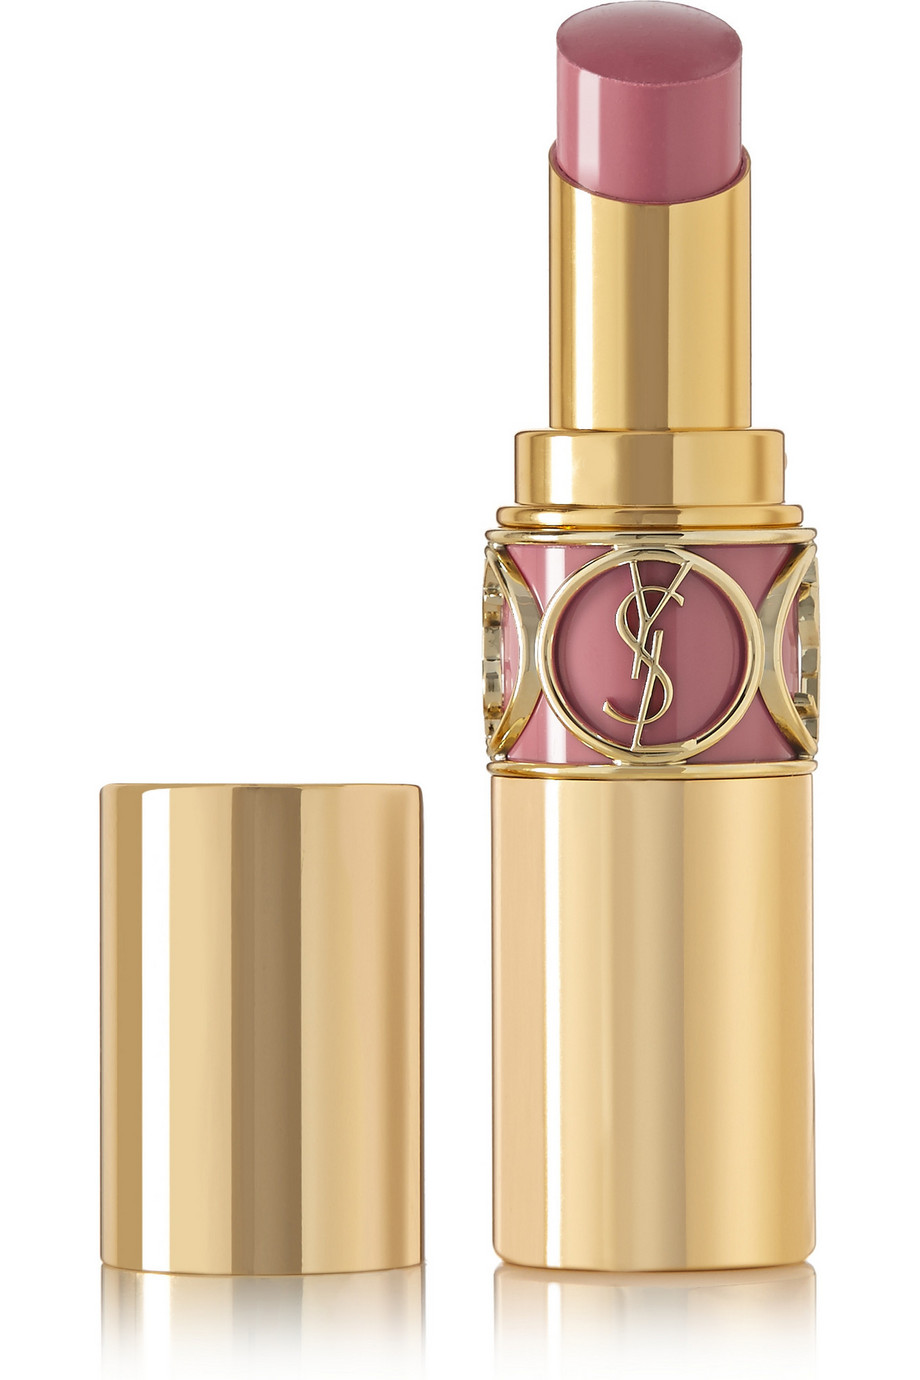 Rouge Volupté Radiant Lipstick - 1 Nude Beige, by Yves Saint Laurent Beauty